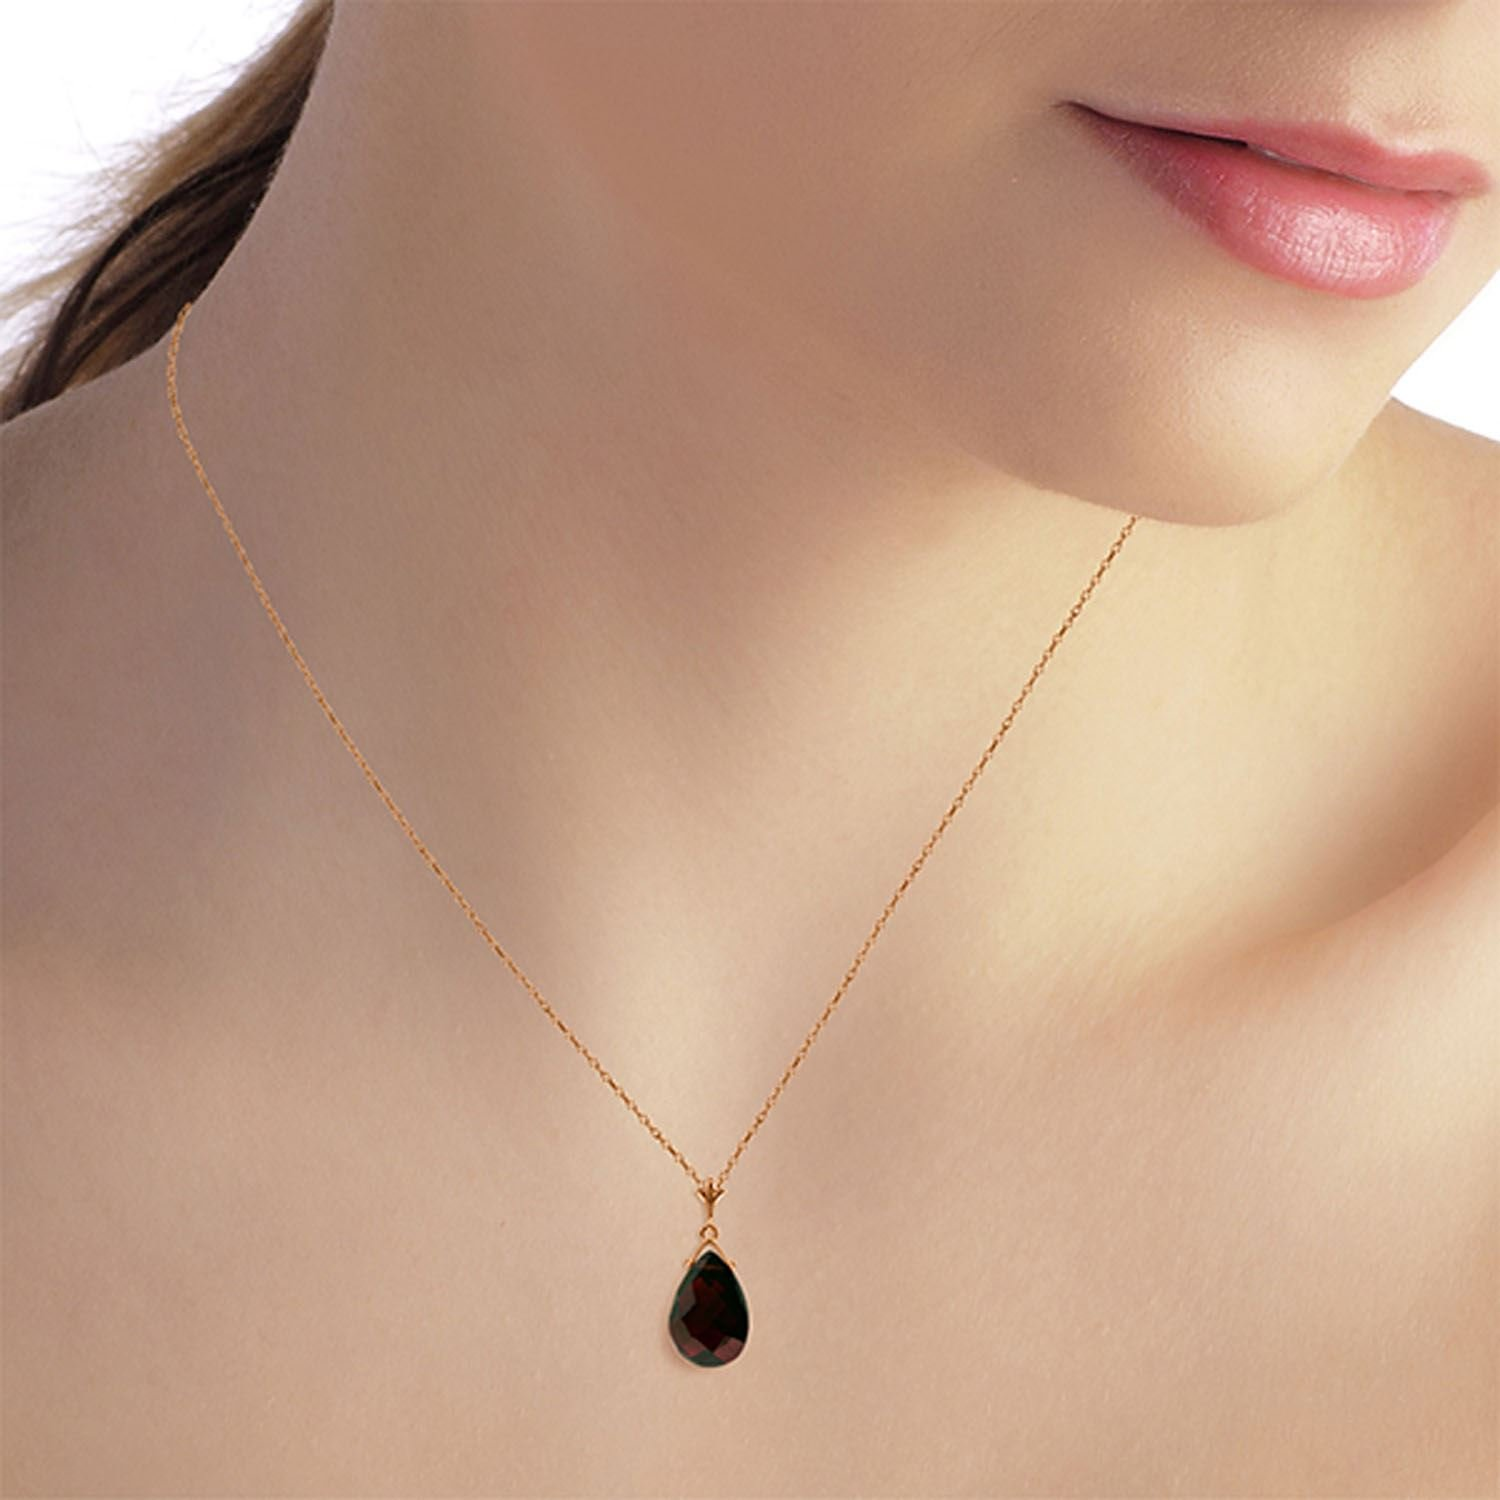 ALARRI 14K Solid Rose Gold Necklace w// Briolette Garnet with 18 Inch Chain Length